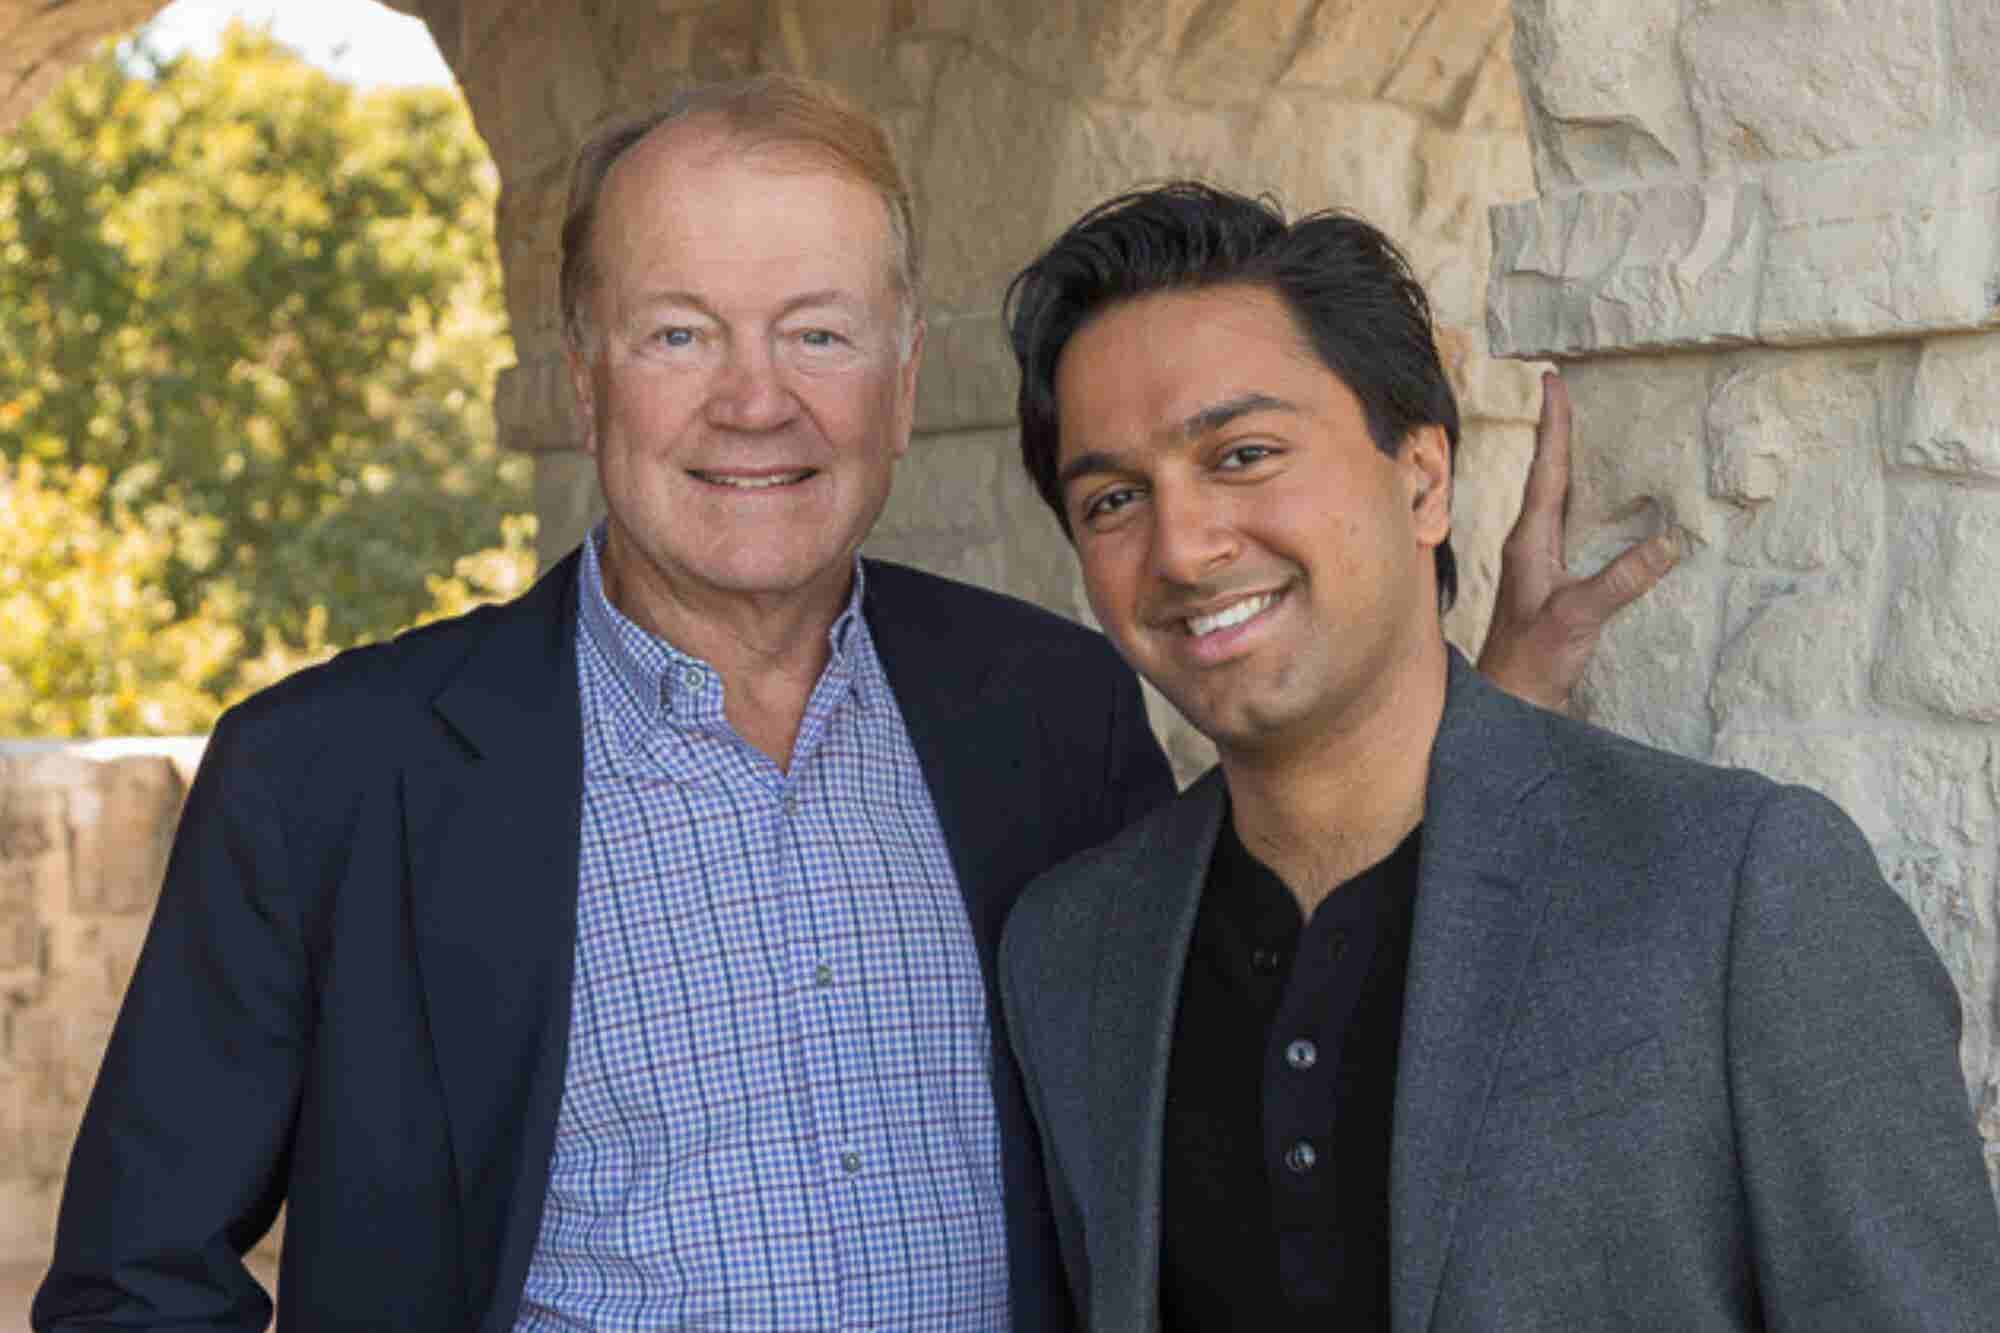 Tale of a 15-Second Pitch That Left Ex-Cisco Chairman John Chambers Im...